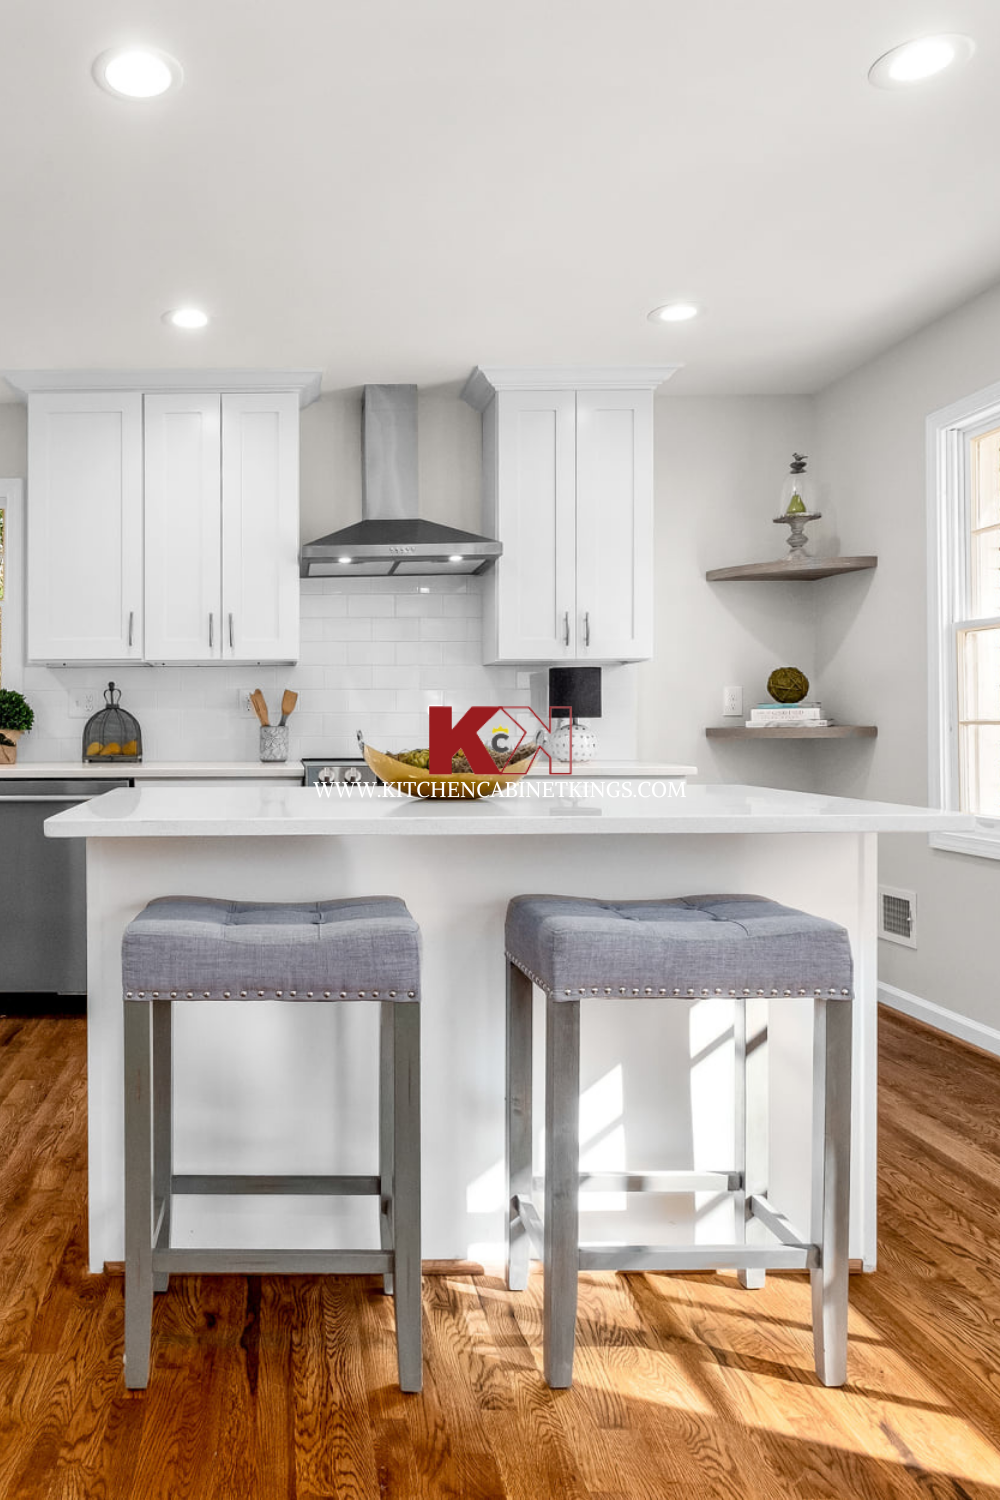 Ice White Shaker Kitchen Cabinets In 2021 Online Kitchen Cabinets Assembled Kitchen Cabinets White Shaker Kitchen Cabinets